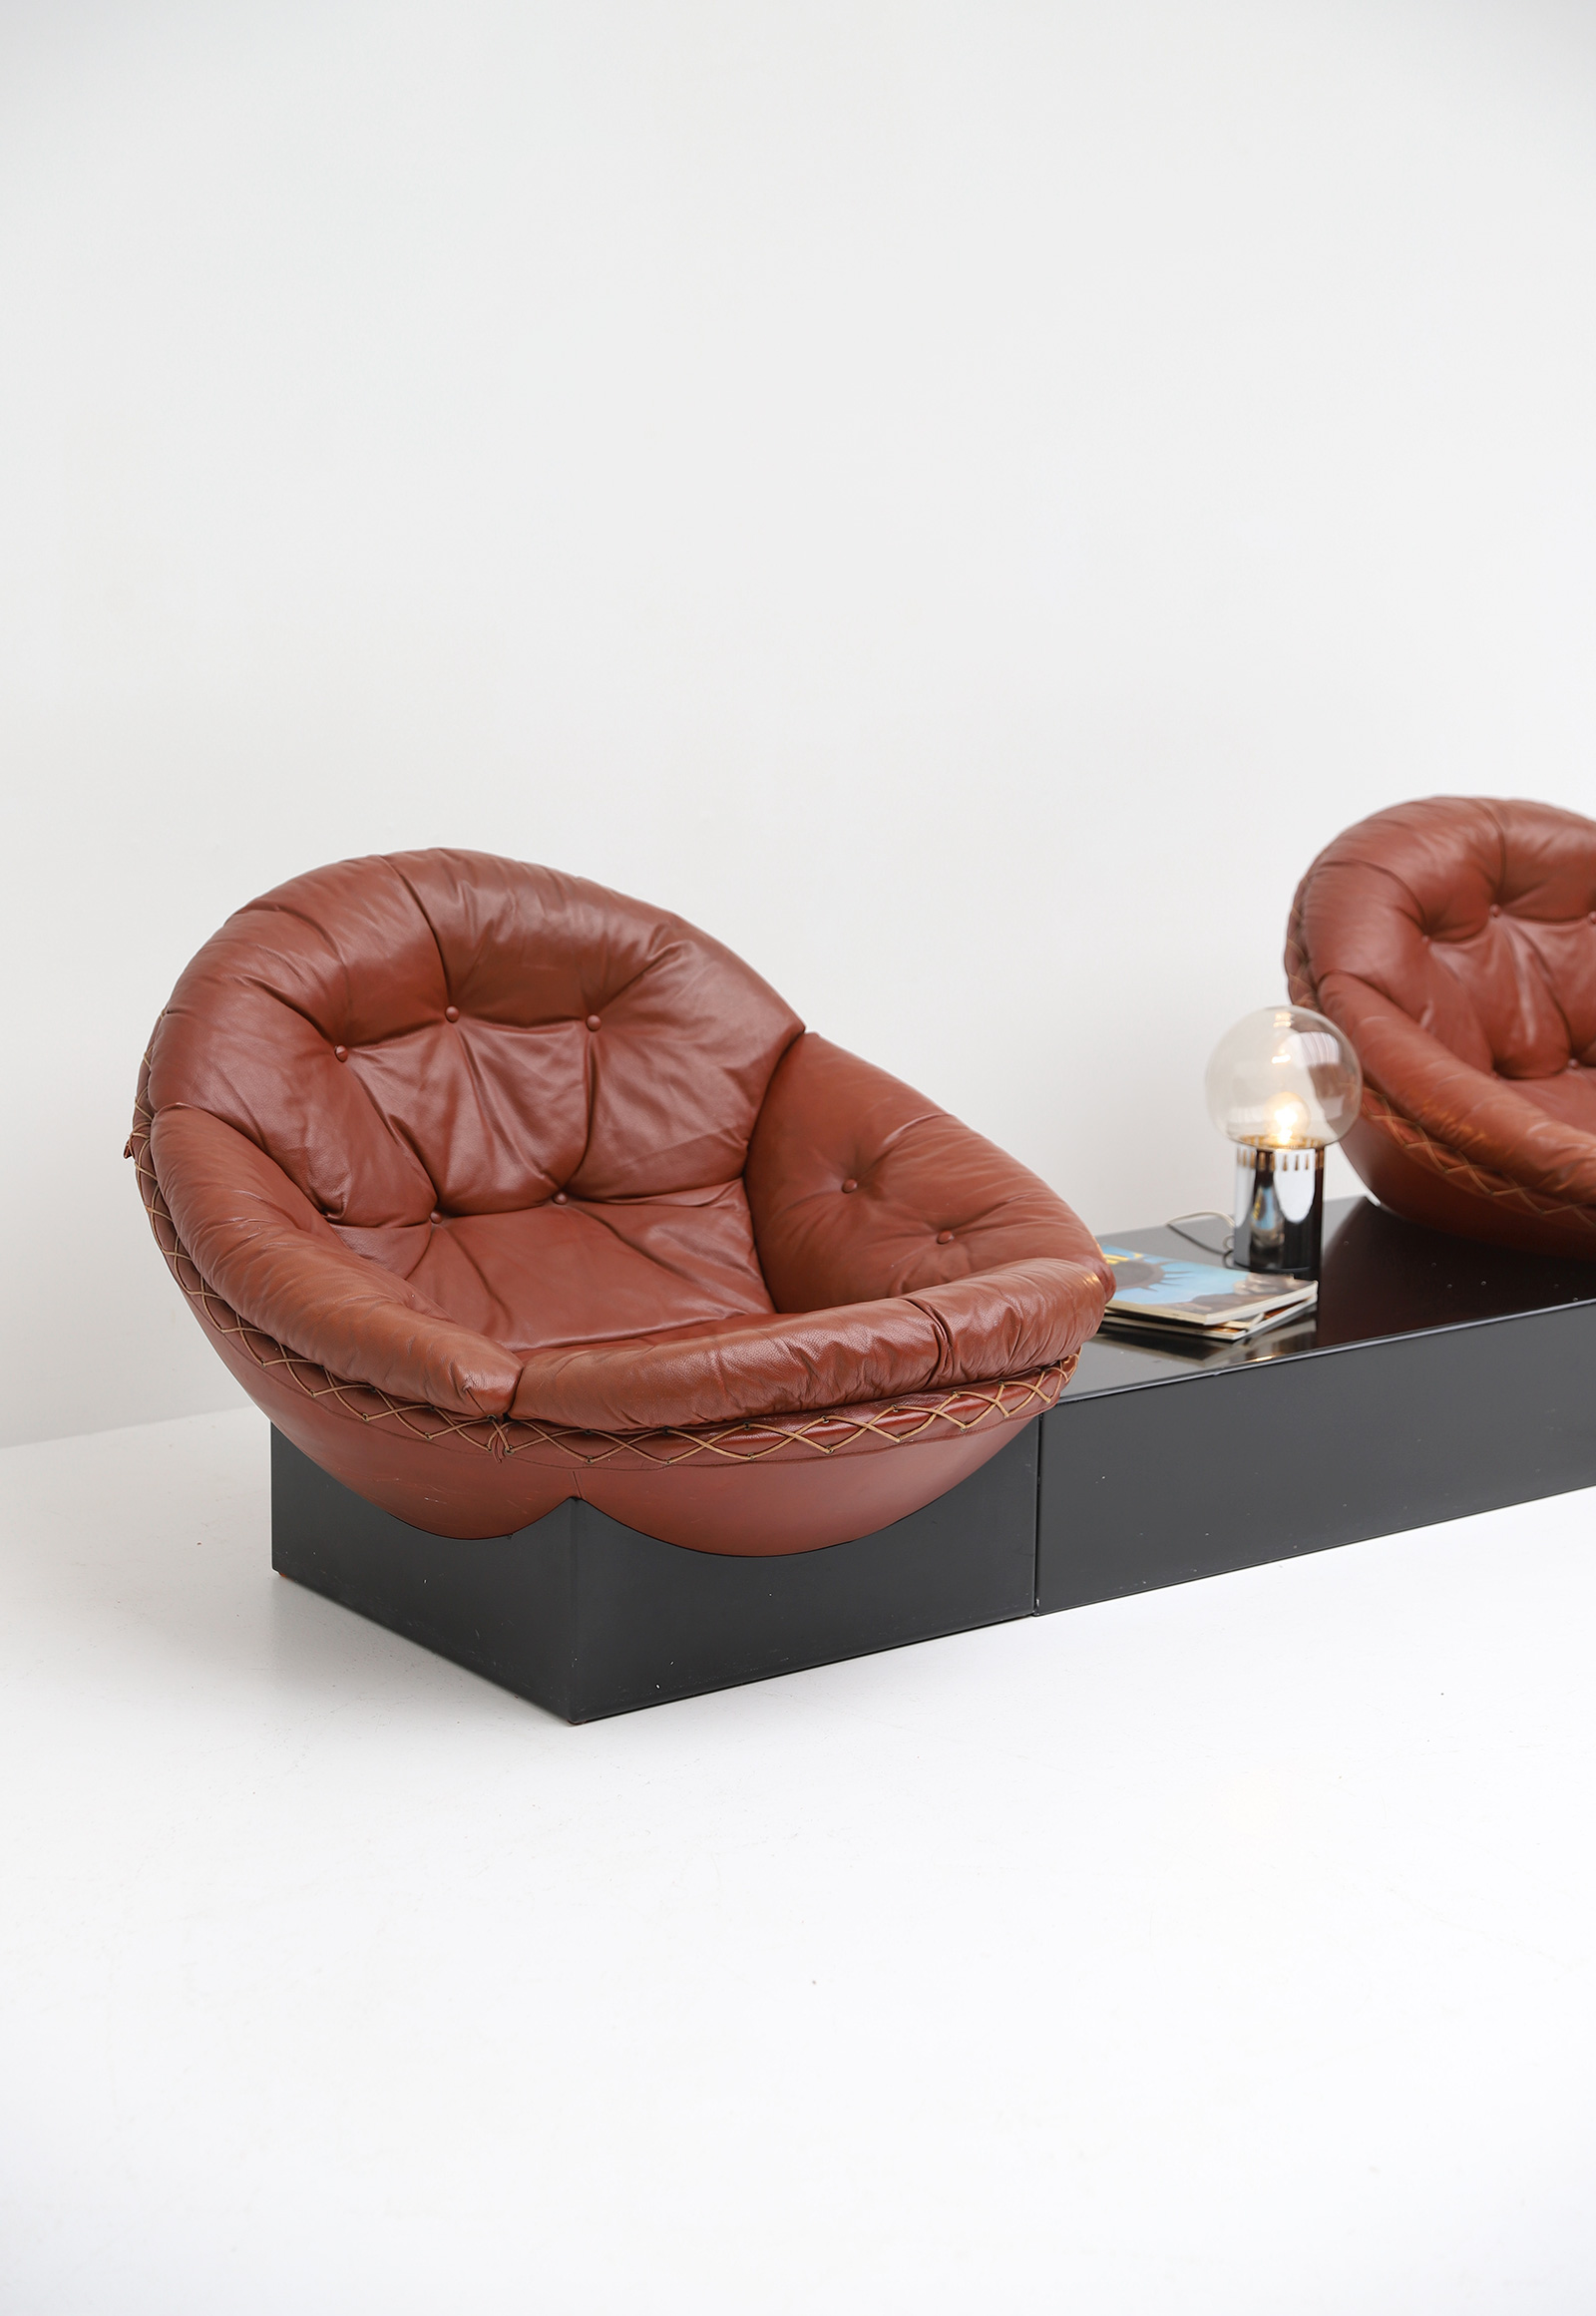 Leather Lounge Chairs by Illum Wikkelso for Ryesberg 1970simage 10